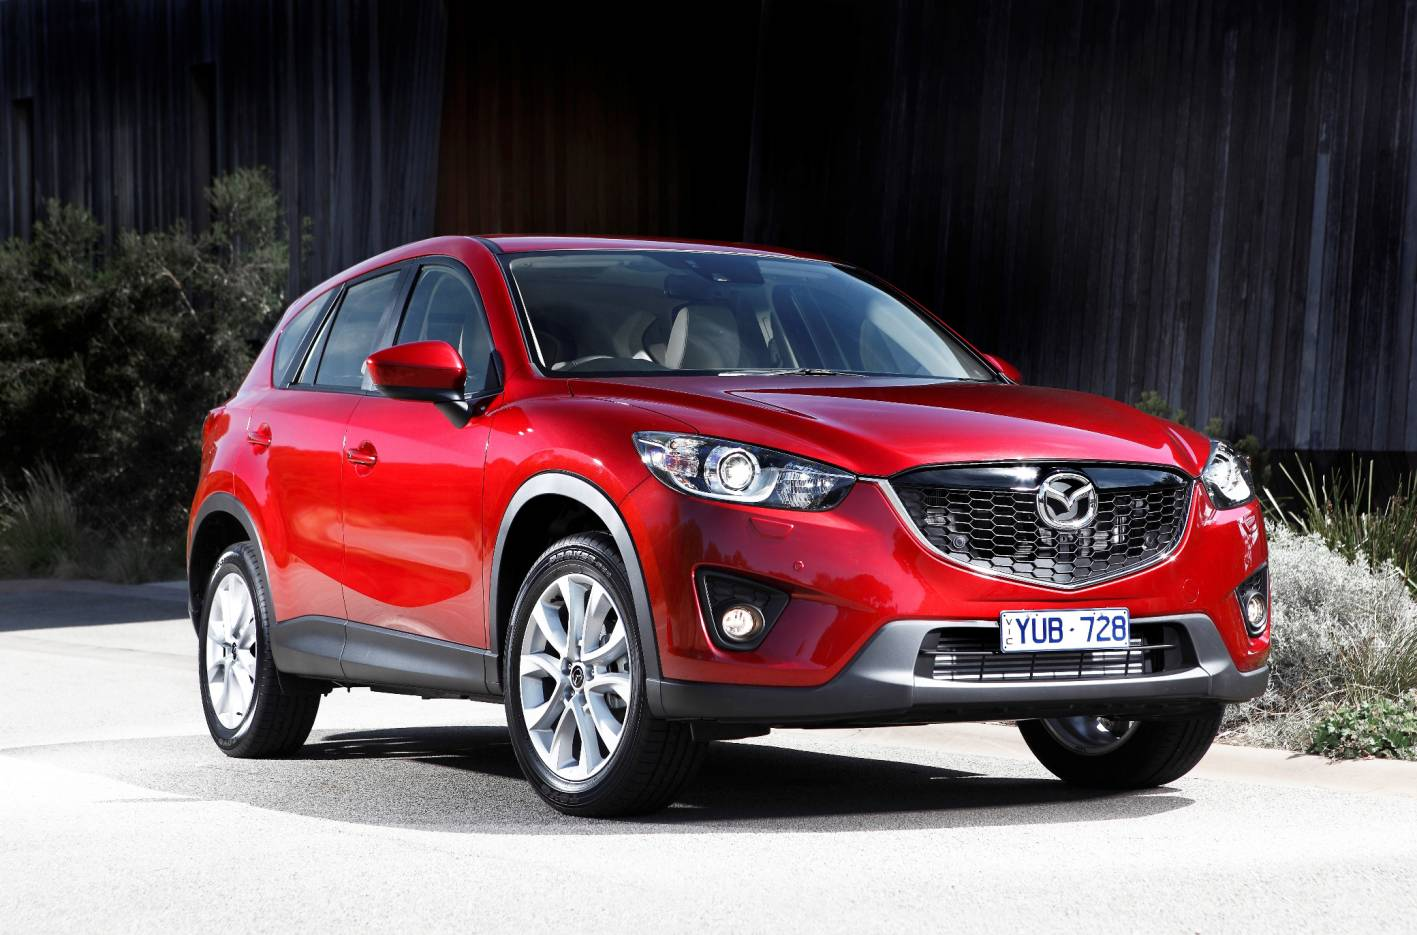 review - 2012 mazda cx-5 diesel first drive